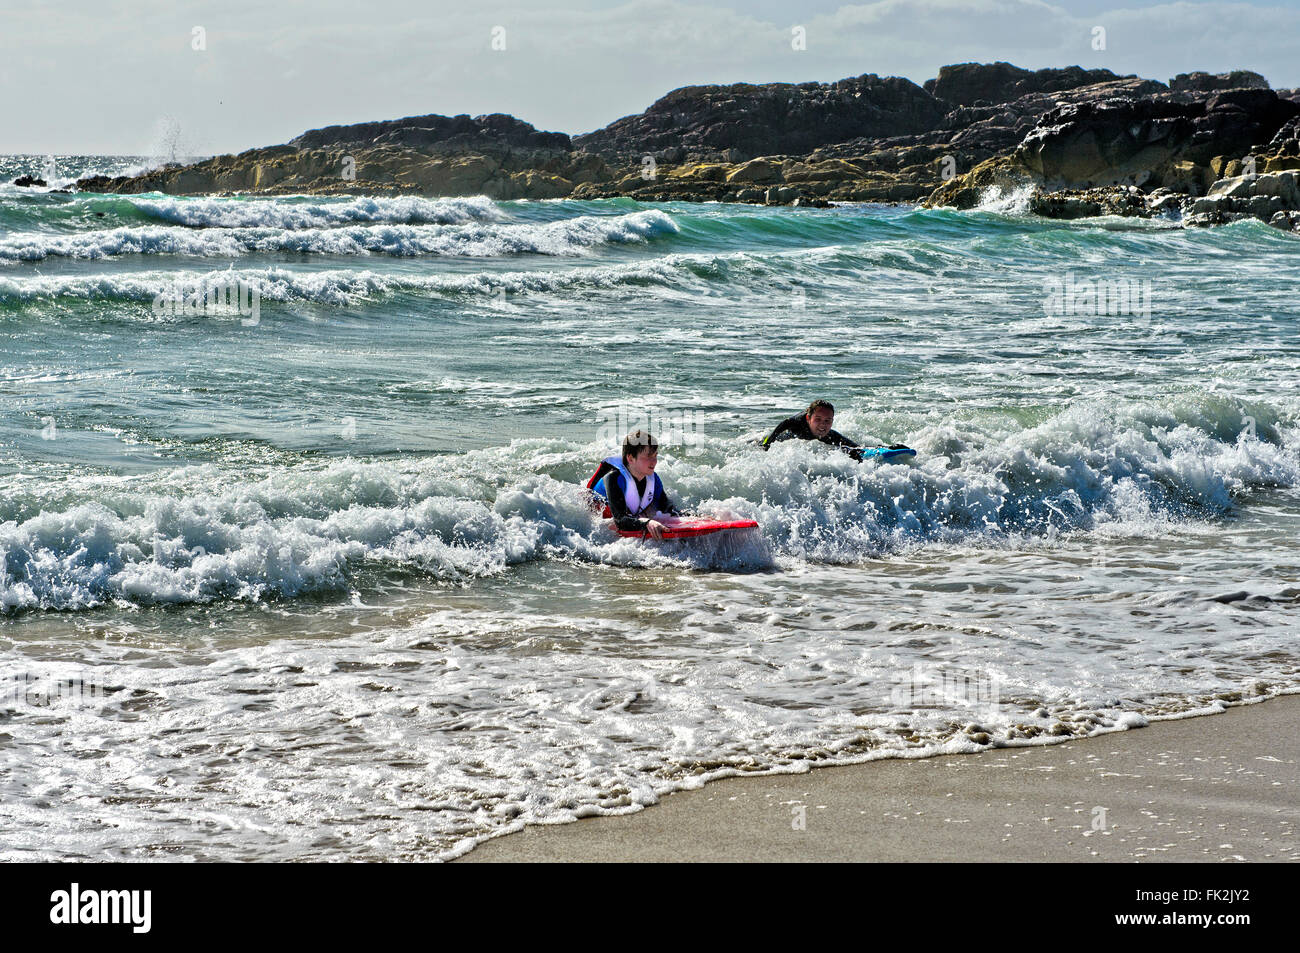 Swimmers in the surf at the Clachtoll Bay, Clatchtoll, Assynt, Scotland, United Kingdom - Stock Image